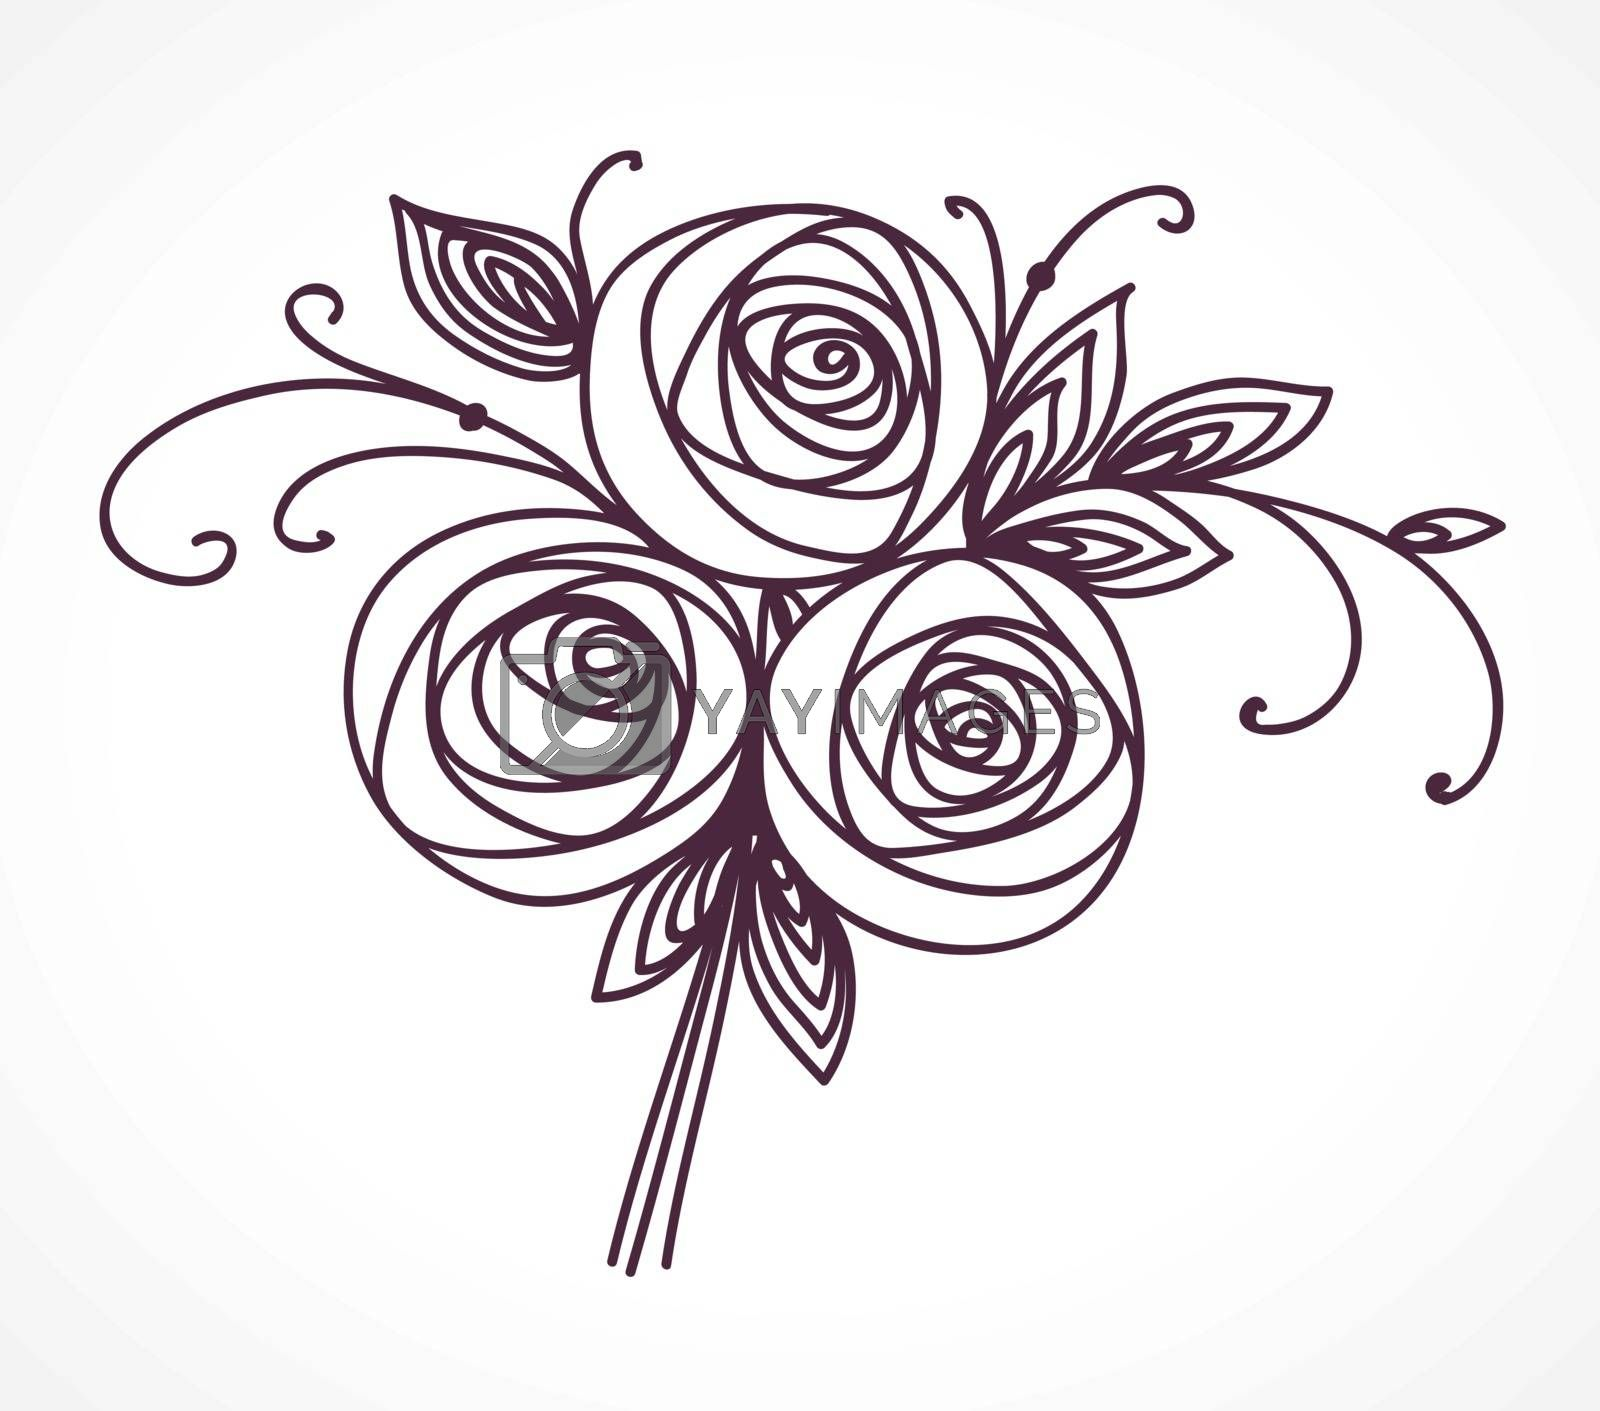 Flower bouquet. Stylized roses hand drawing. Outline icon symbol. Present for wedding, birthday invitation card